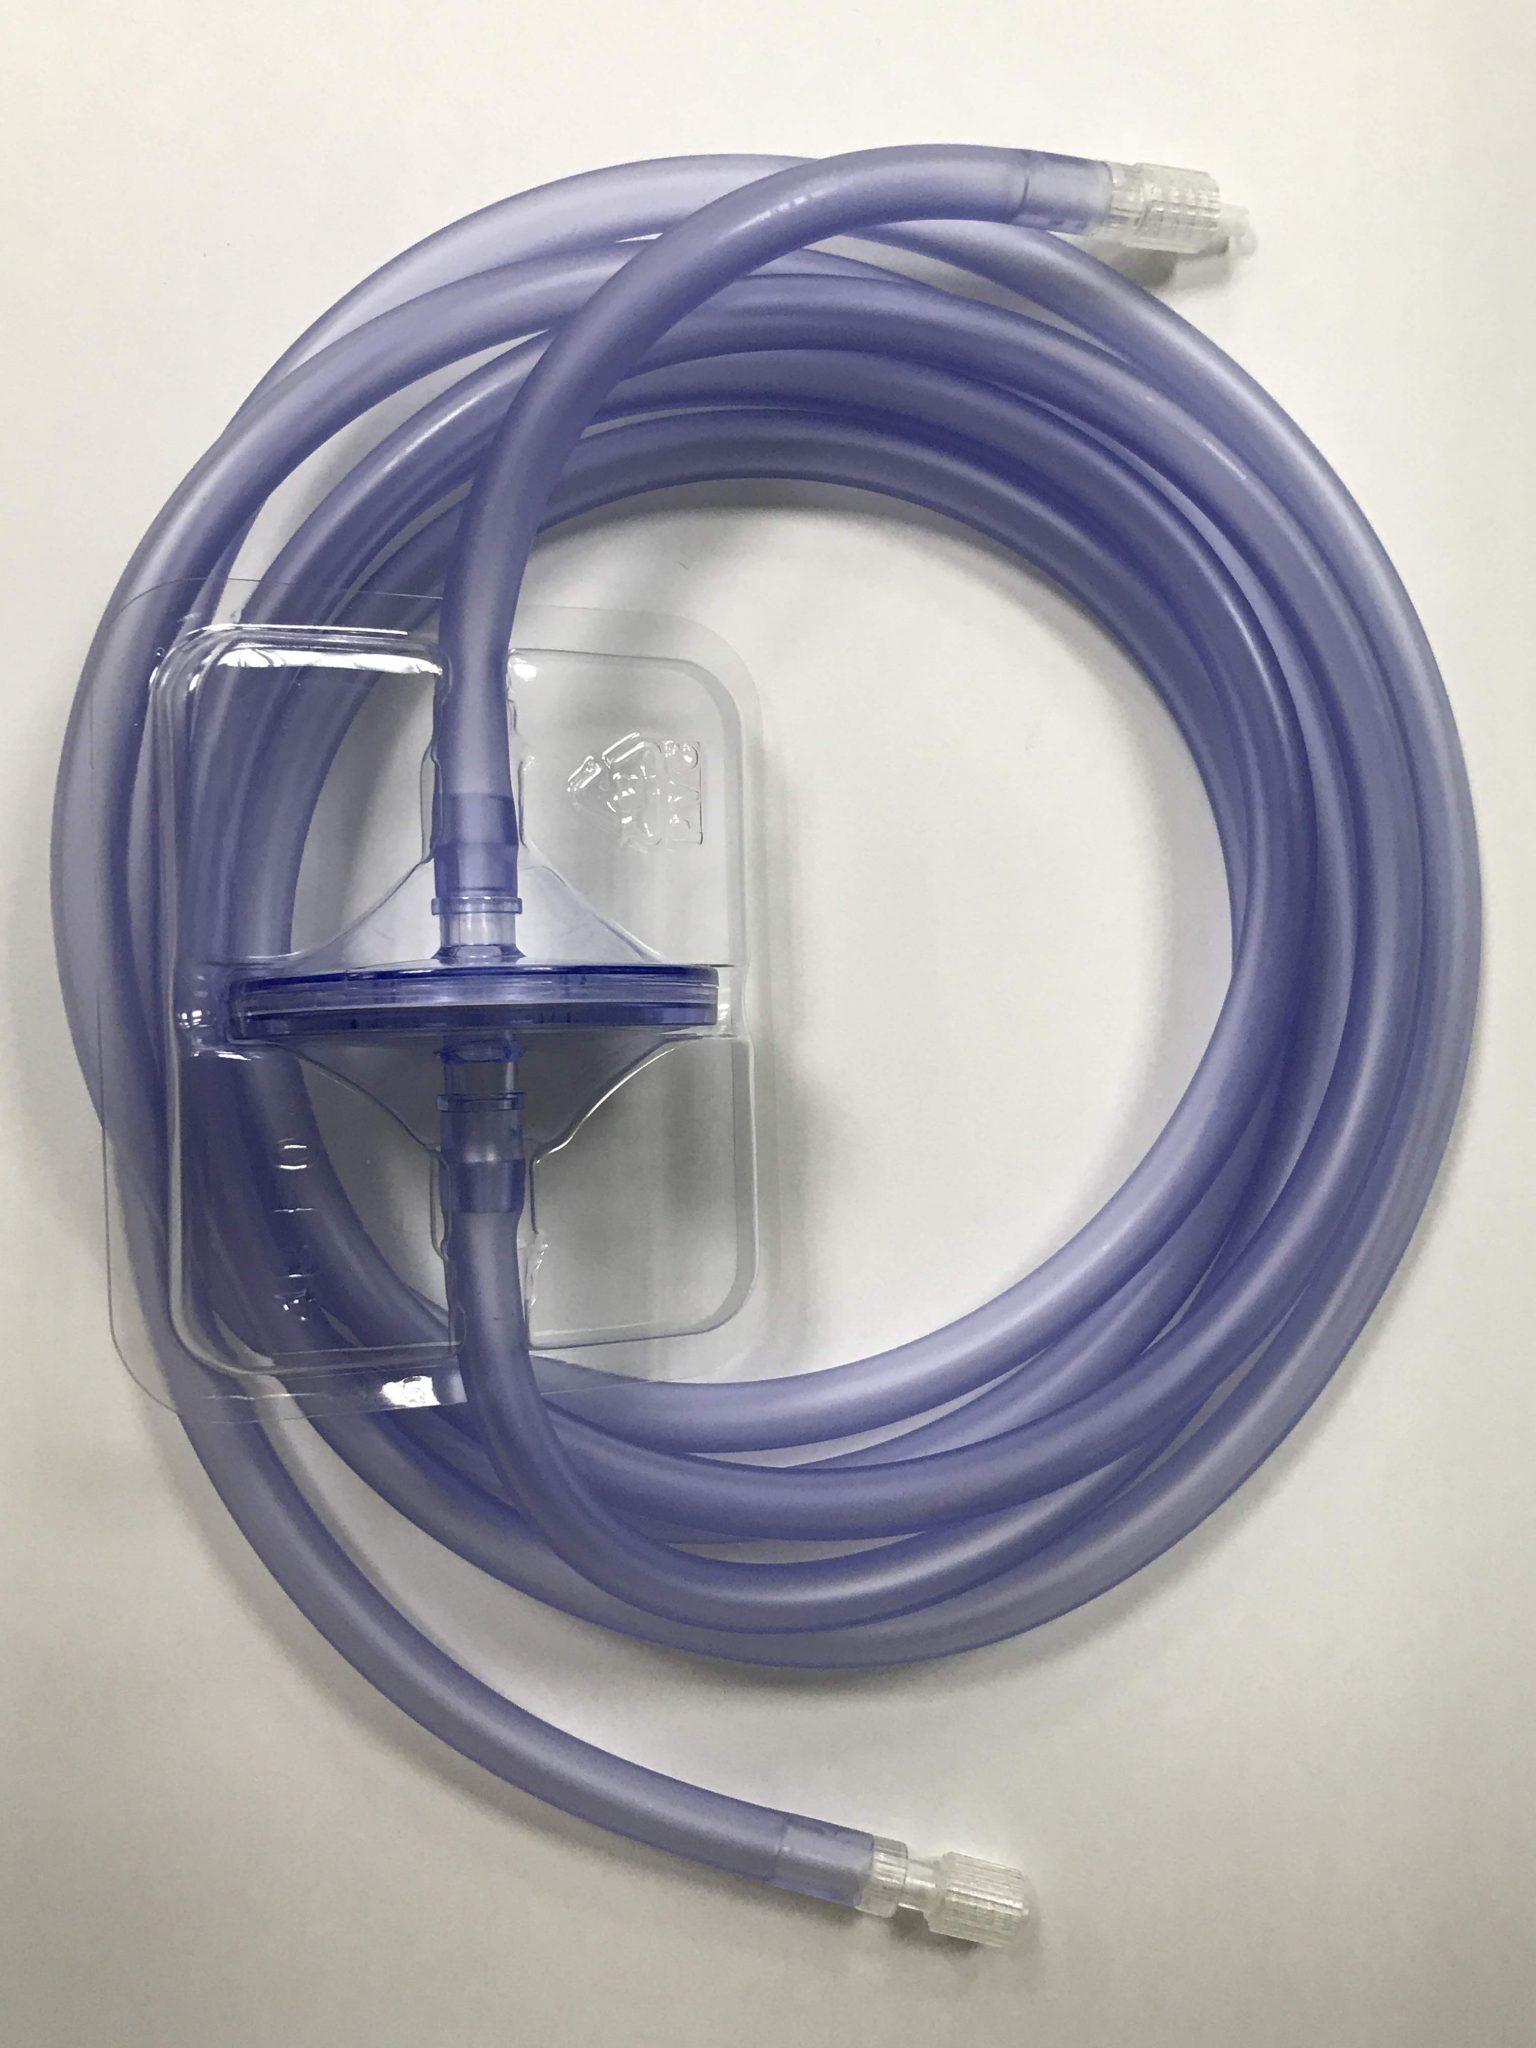 Insufflation Tubing Kits & Particulate Filters image cover